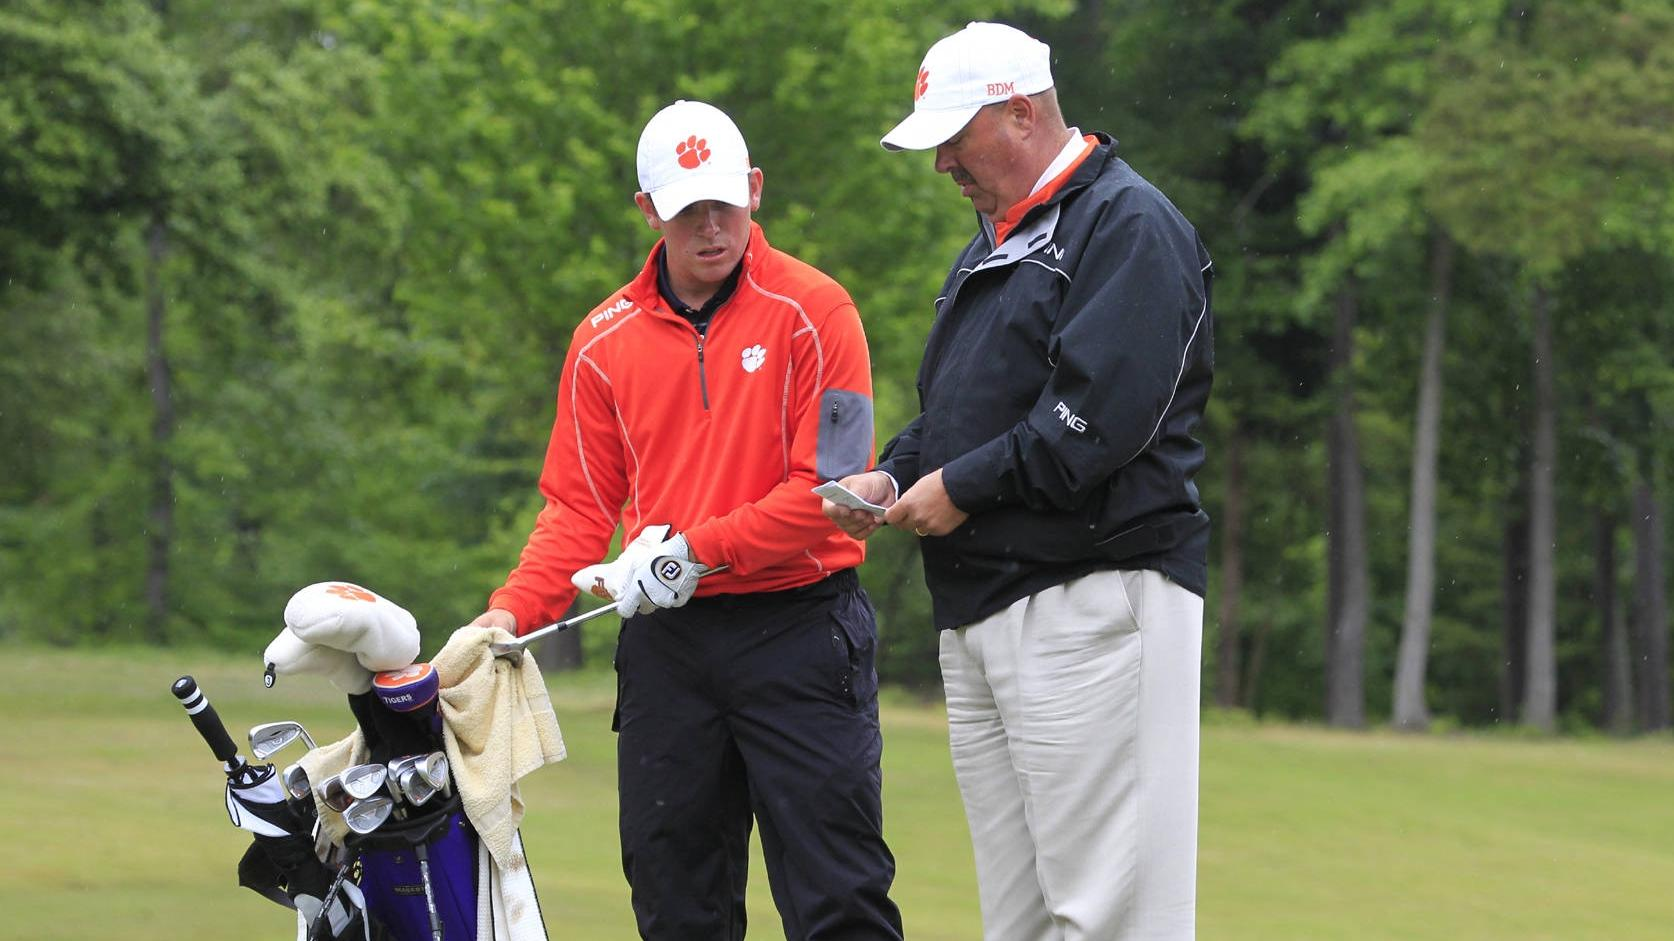 Crawford Reeves Fires Opening Round 64 at South Carolina Amateur